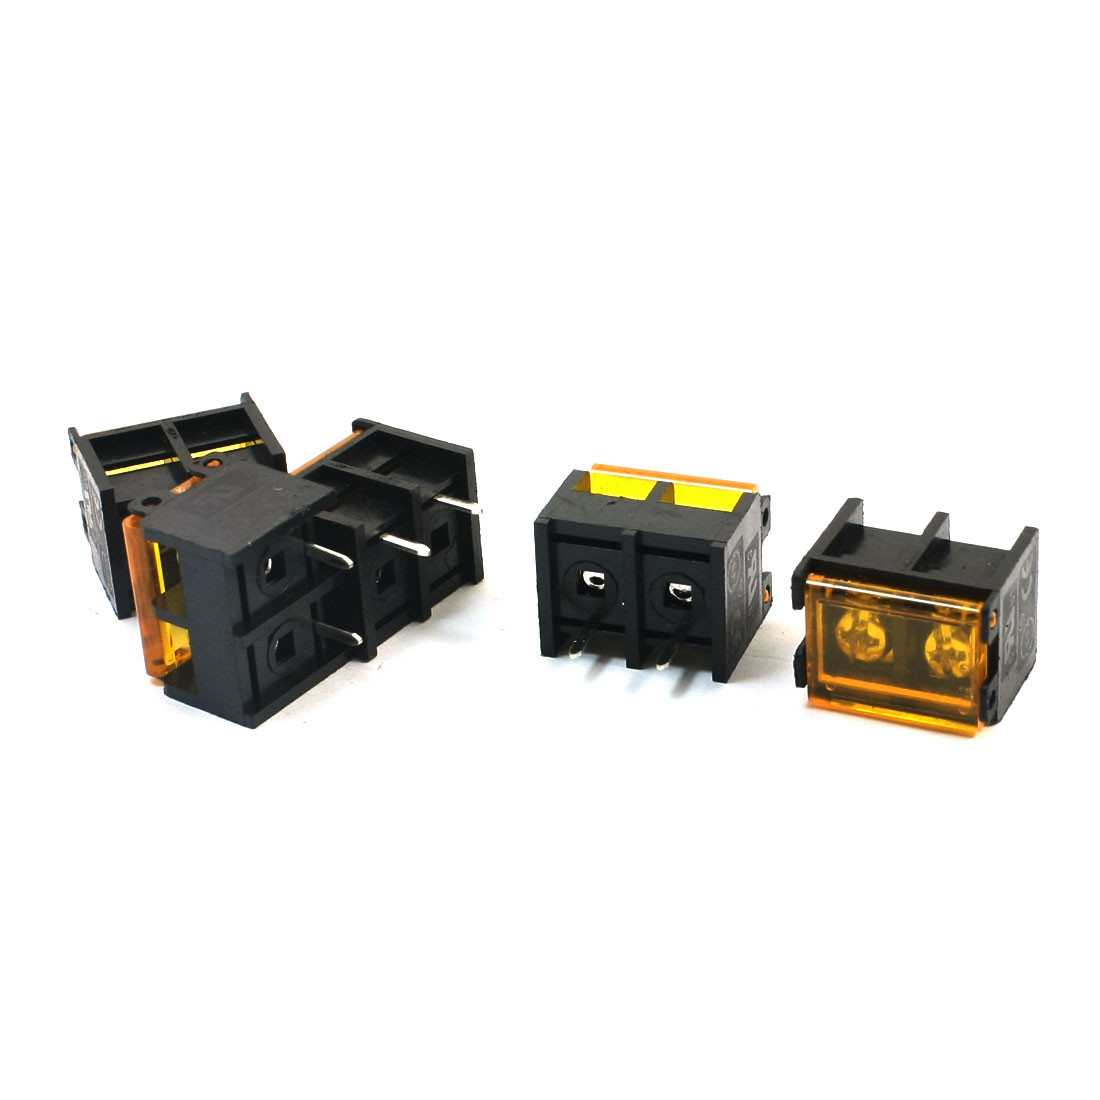 300V 30A 9.5mm Pitch 2-Position PCB Mounting Pluggable Type Screw Terminal Barrier Block Connector 5 Pcs